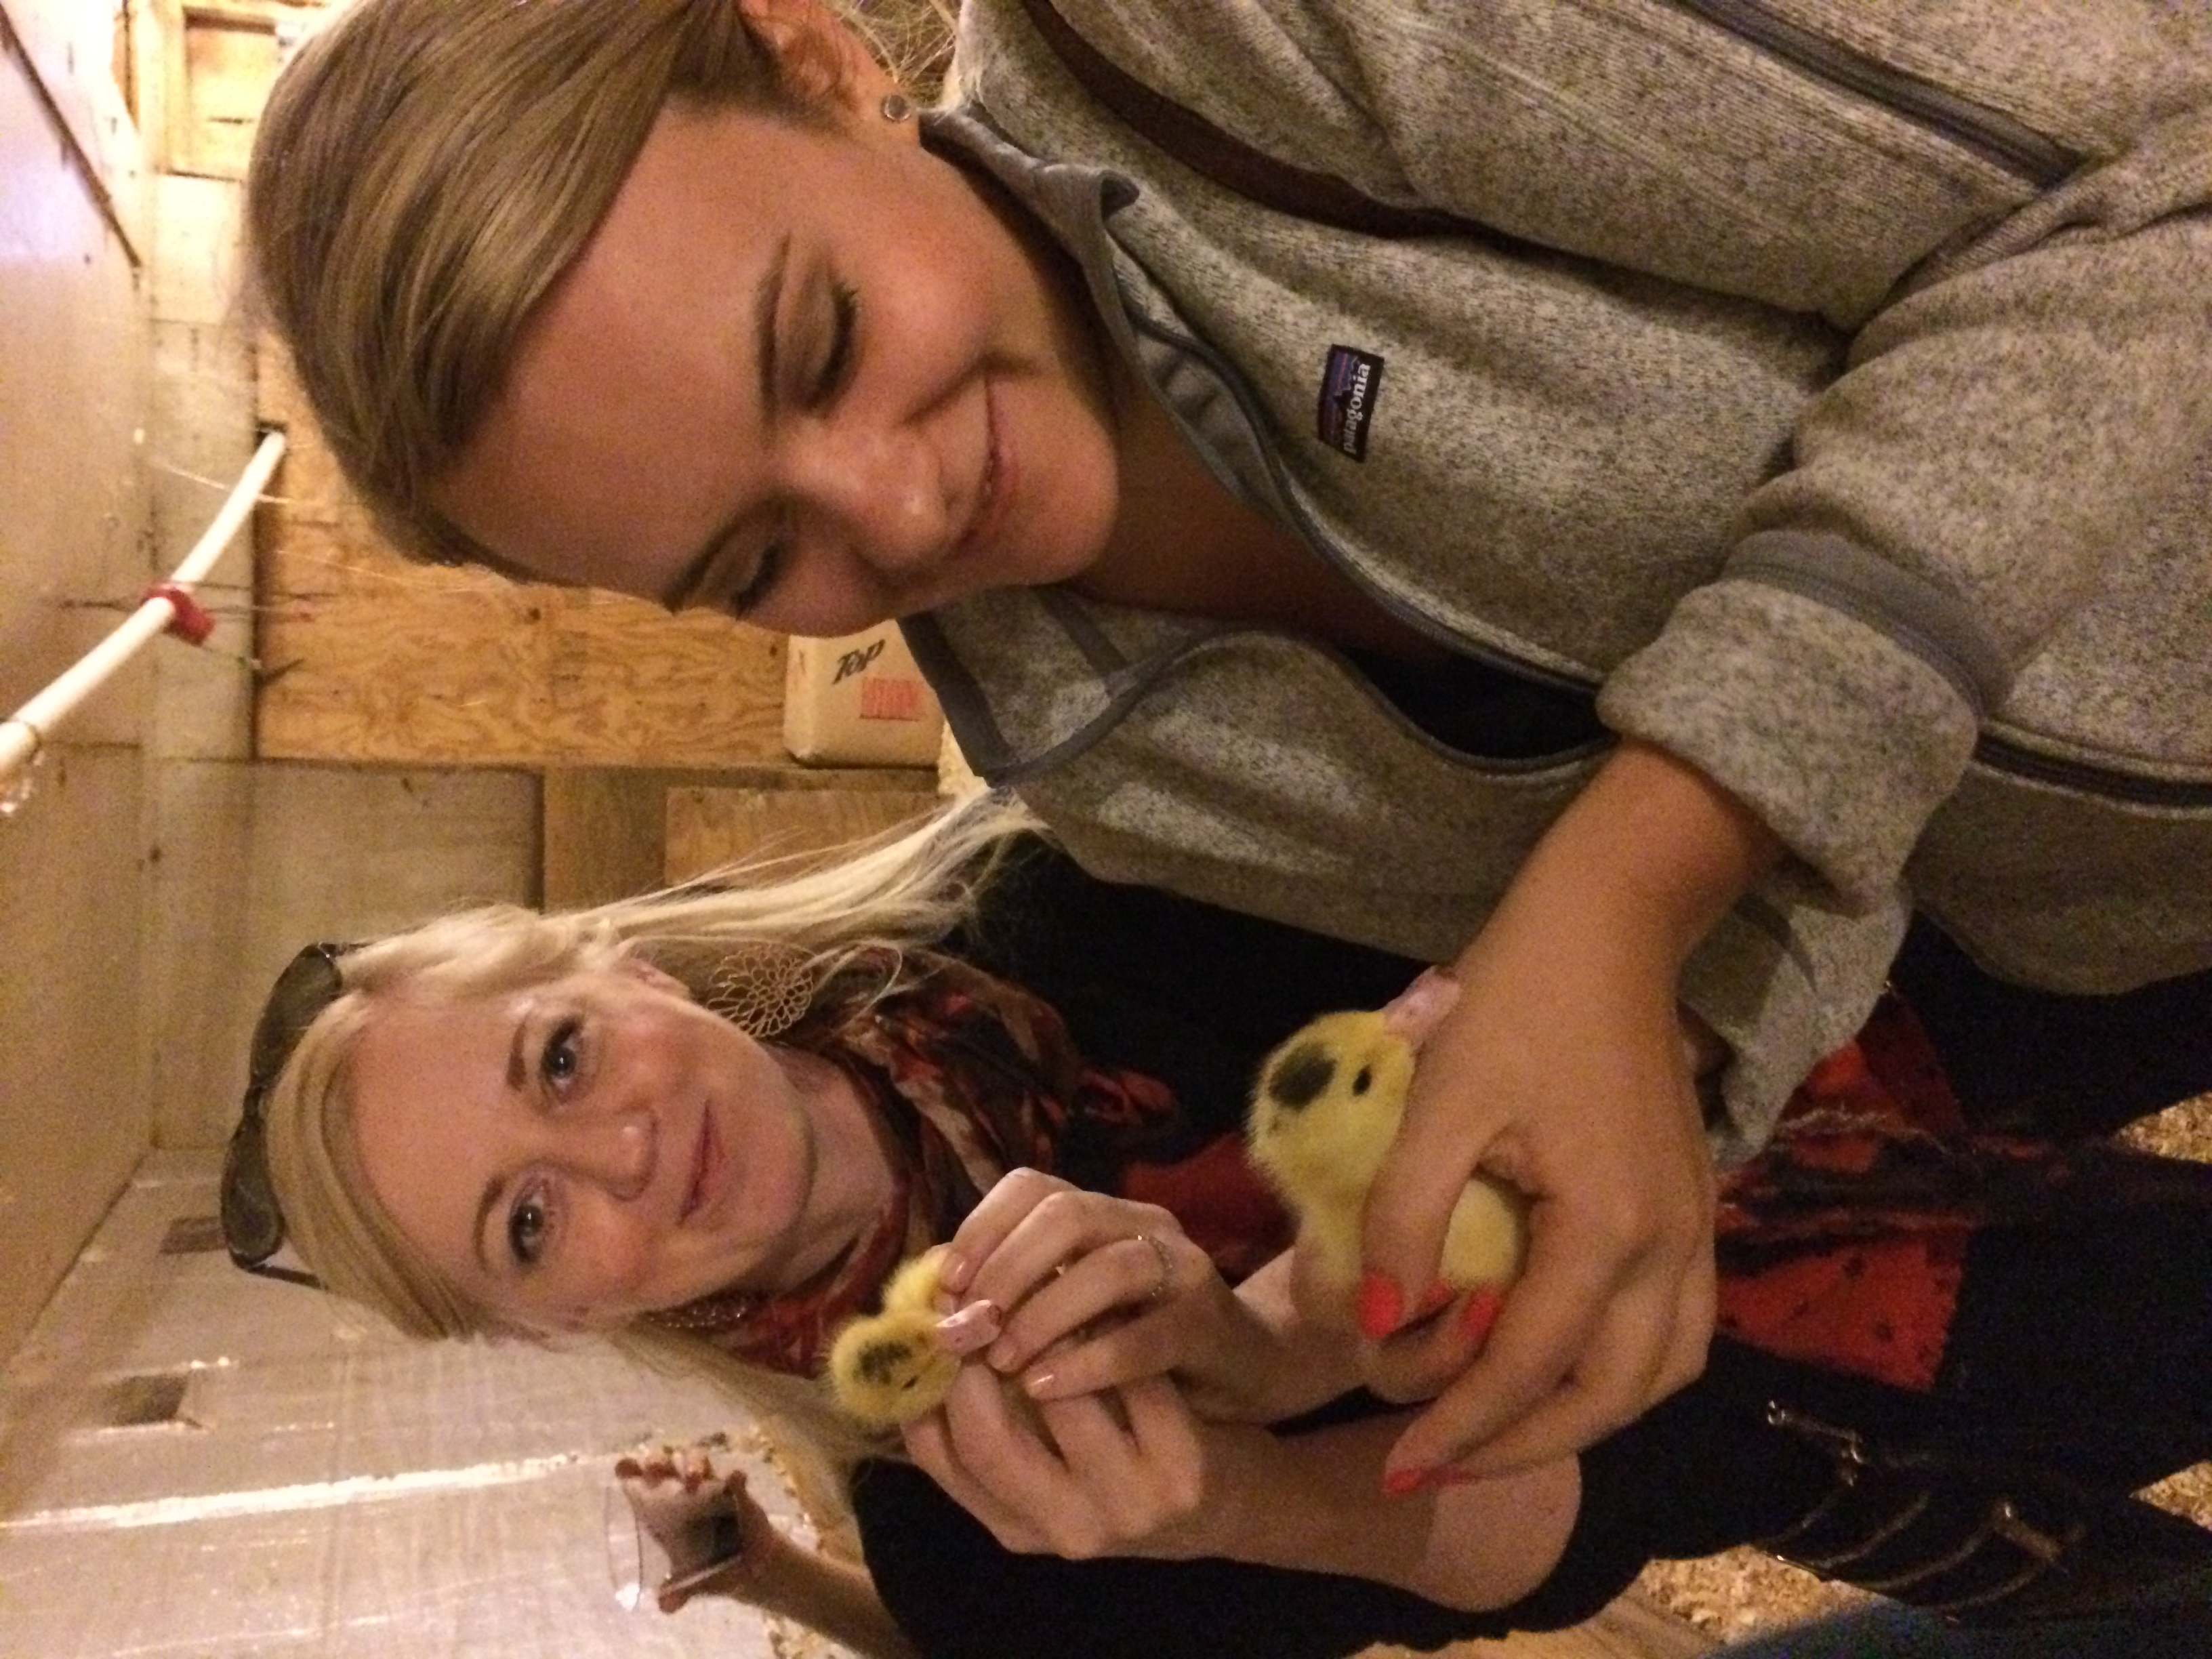 Marion and I holding five-day old chicks. Such sweet little things. Contrary to the picture, they are actually quite difficult to hold. Those wings flap with a vengeance. Even still, totally heavenly.